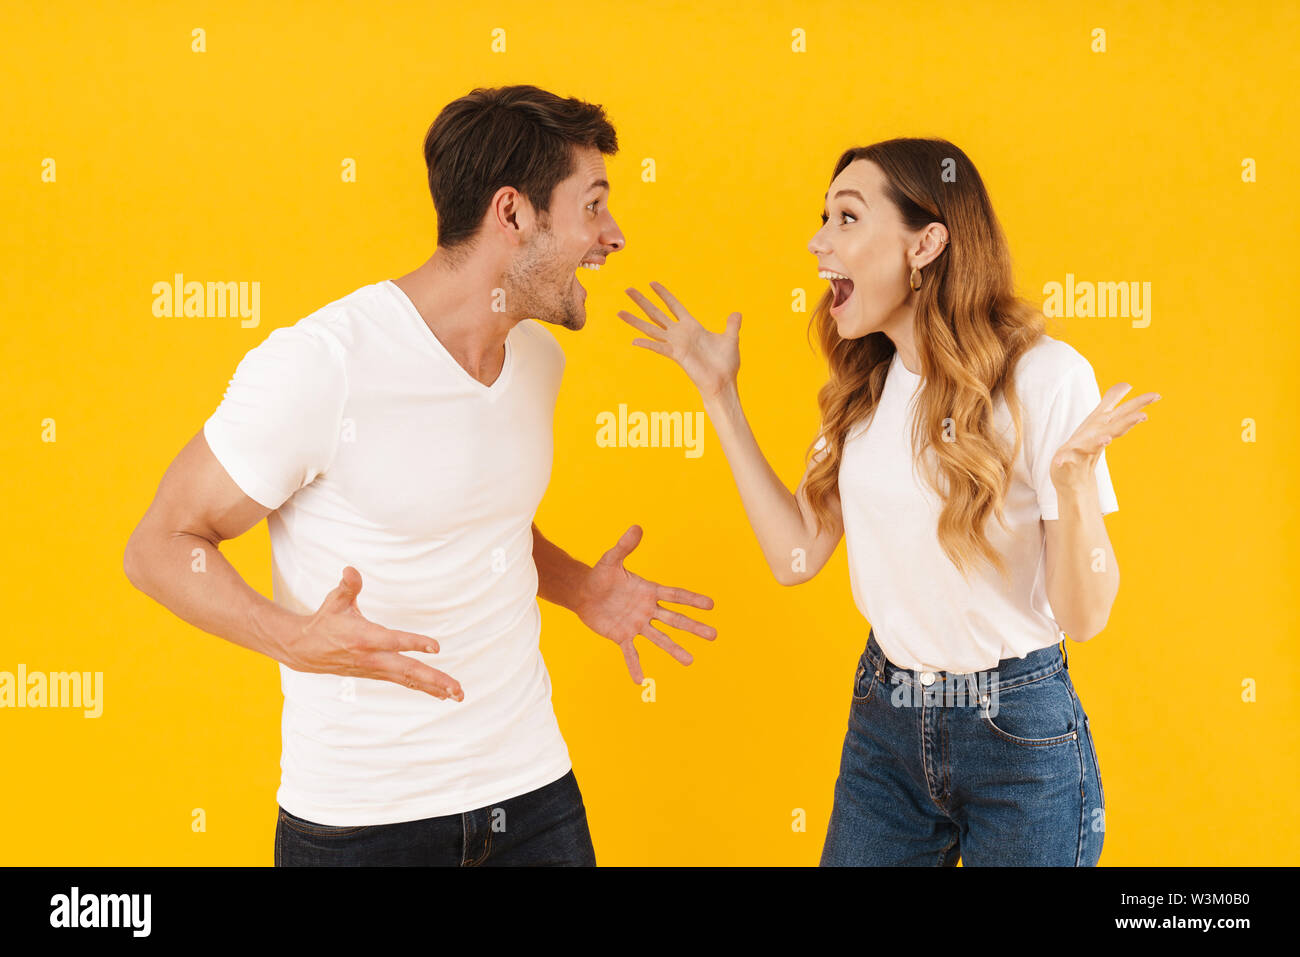 Portrait of happy couple man and woman in basic t-shirts rejoicing with gestures while looking at each other isolated over yellow background - Stock Image